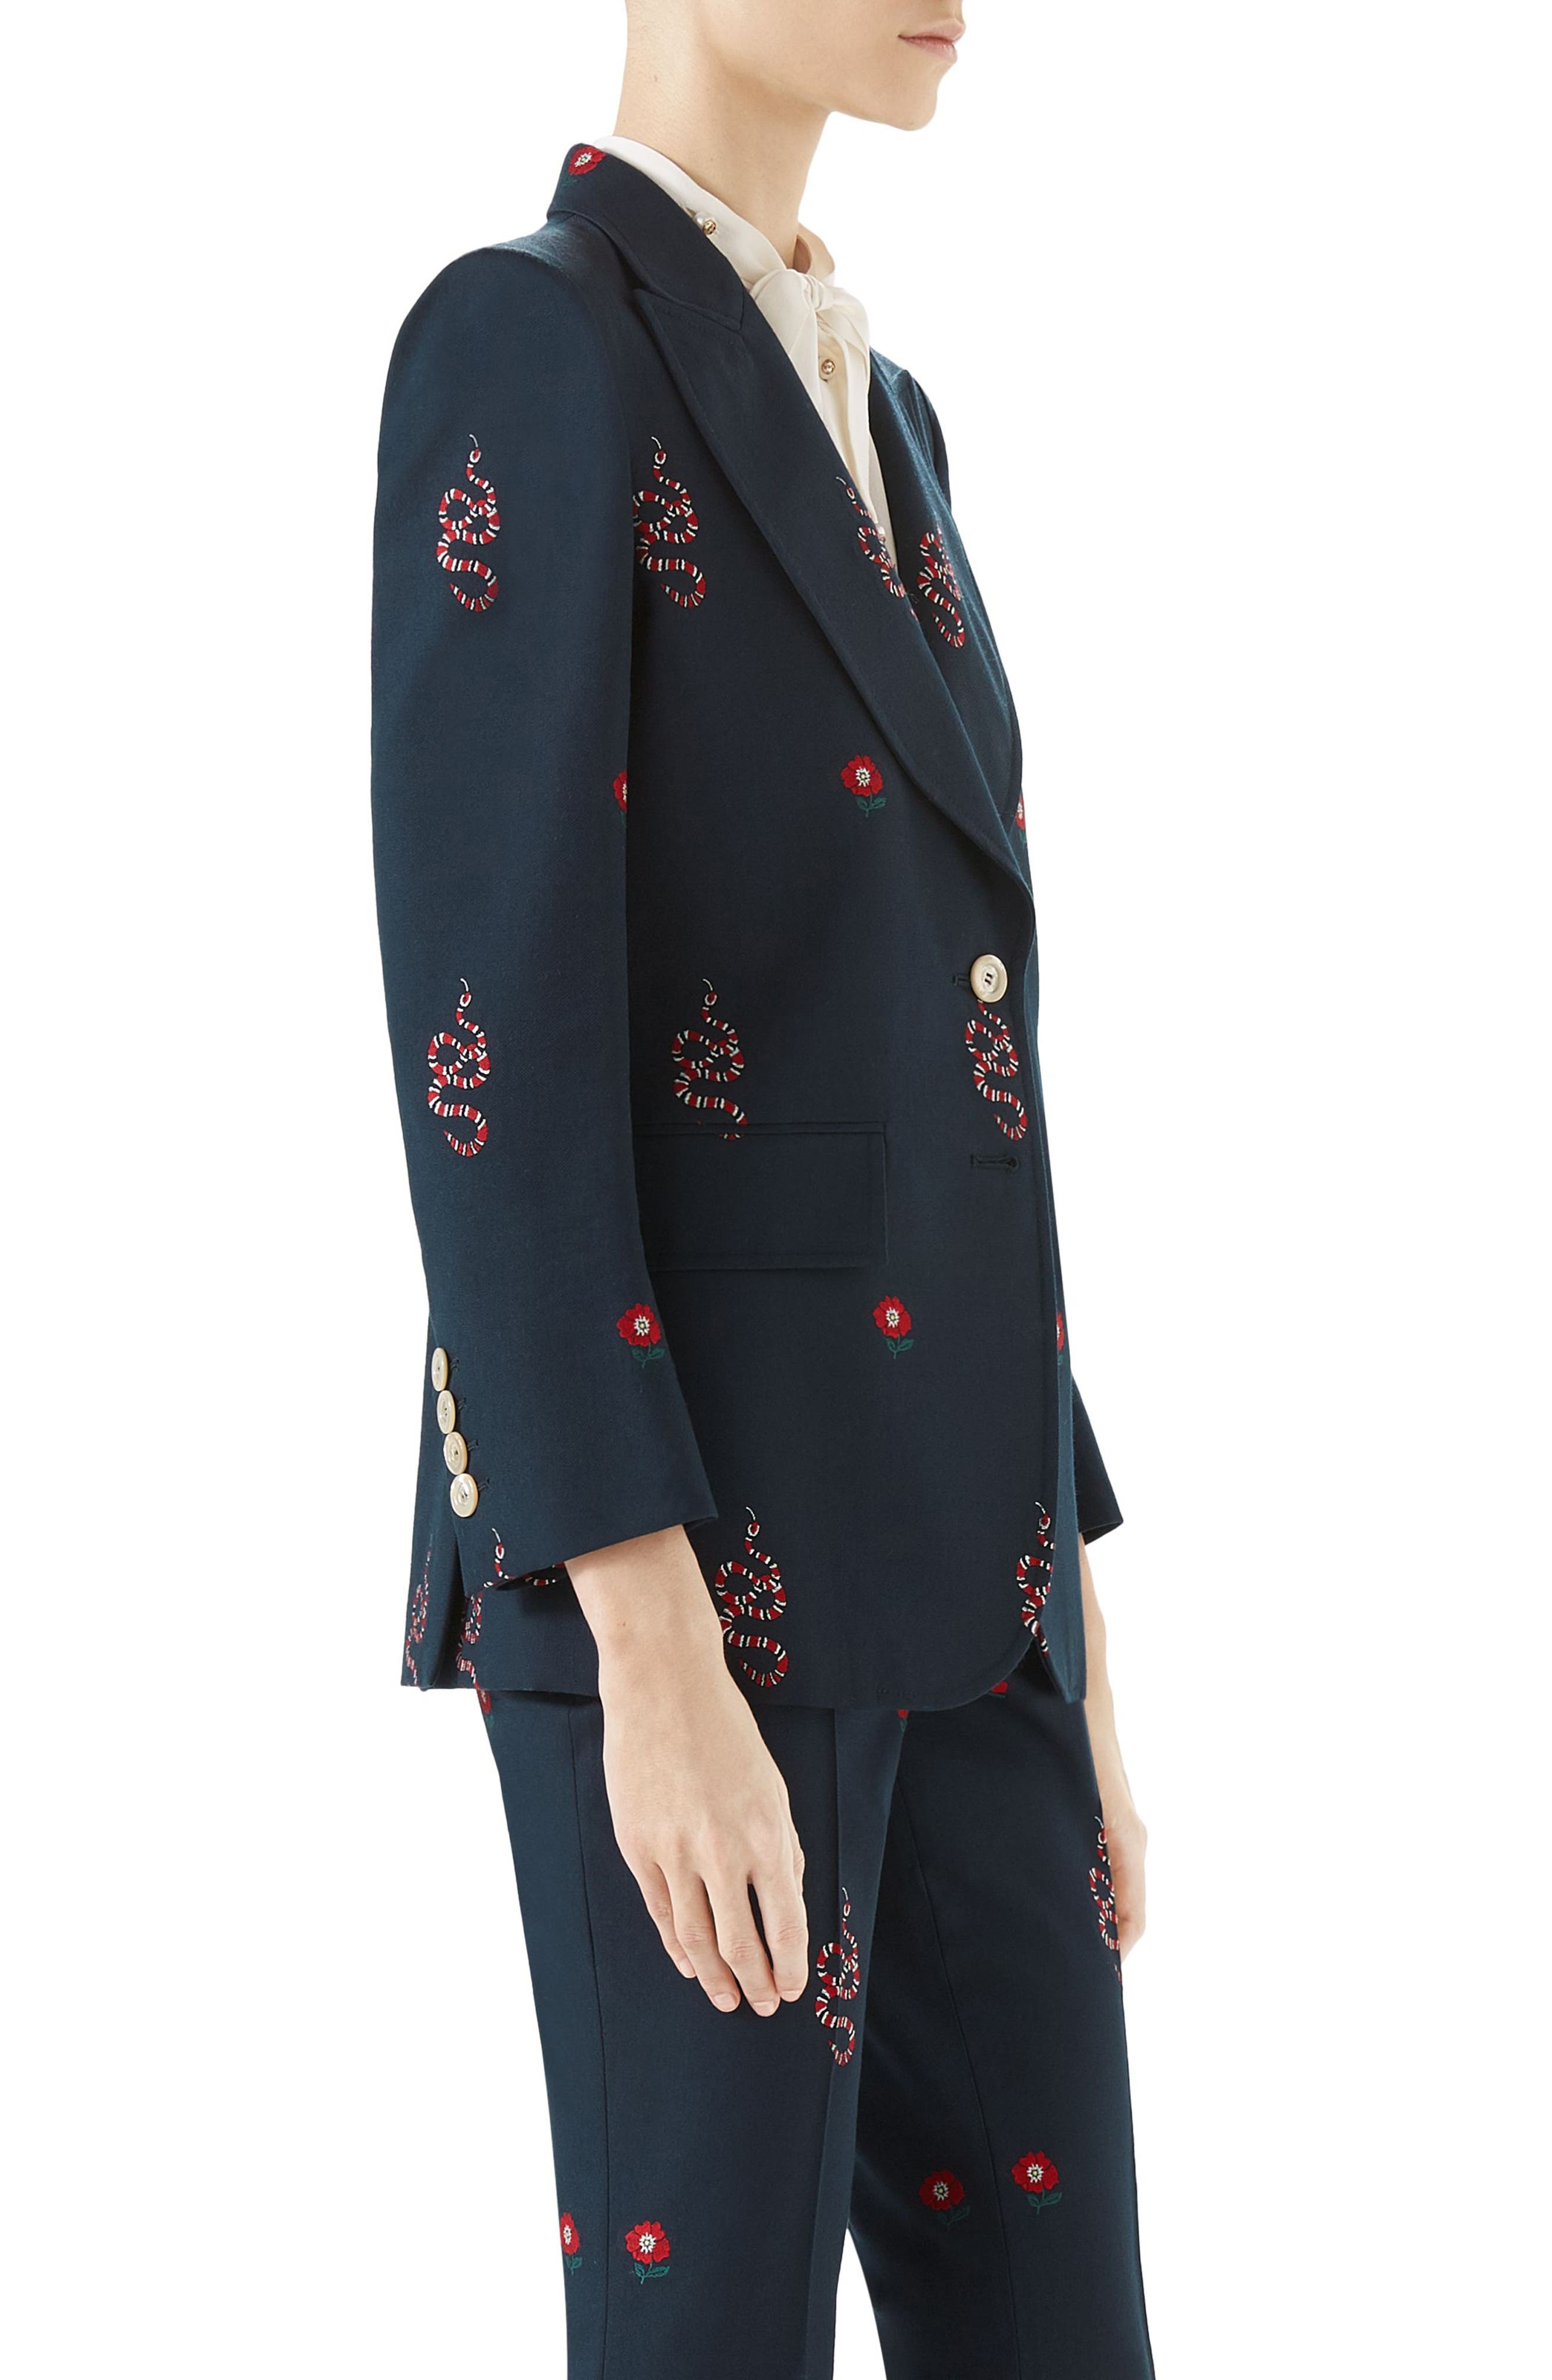 Snake Embroidered Cotton Blazer,                             Alternate thumbnail 2, color,                             INK/ HIBISCUS RED/ MULTI